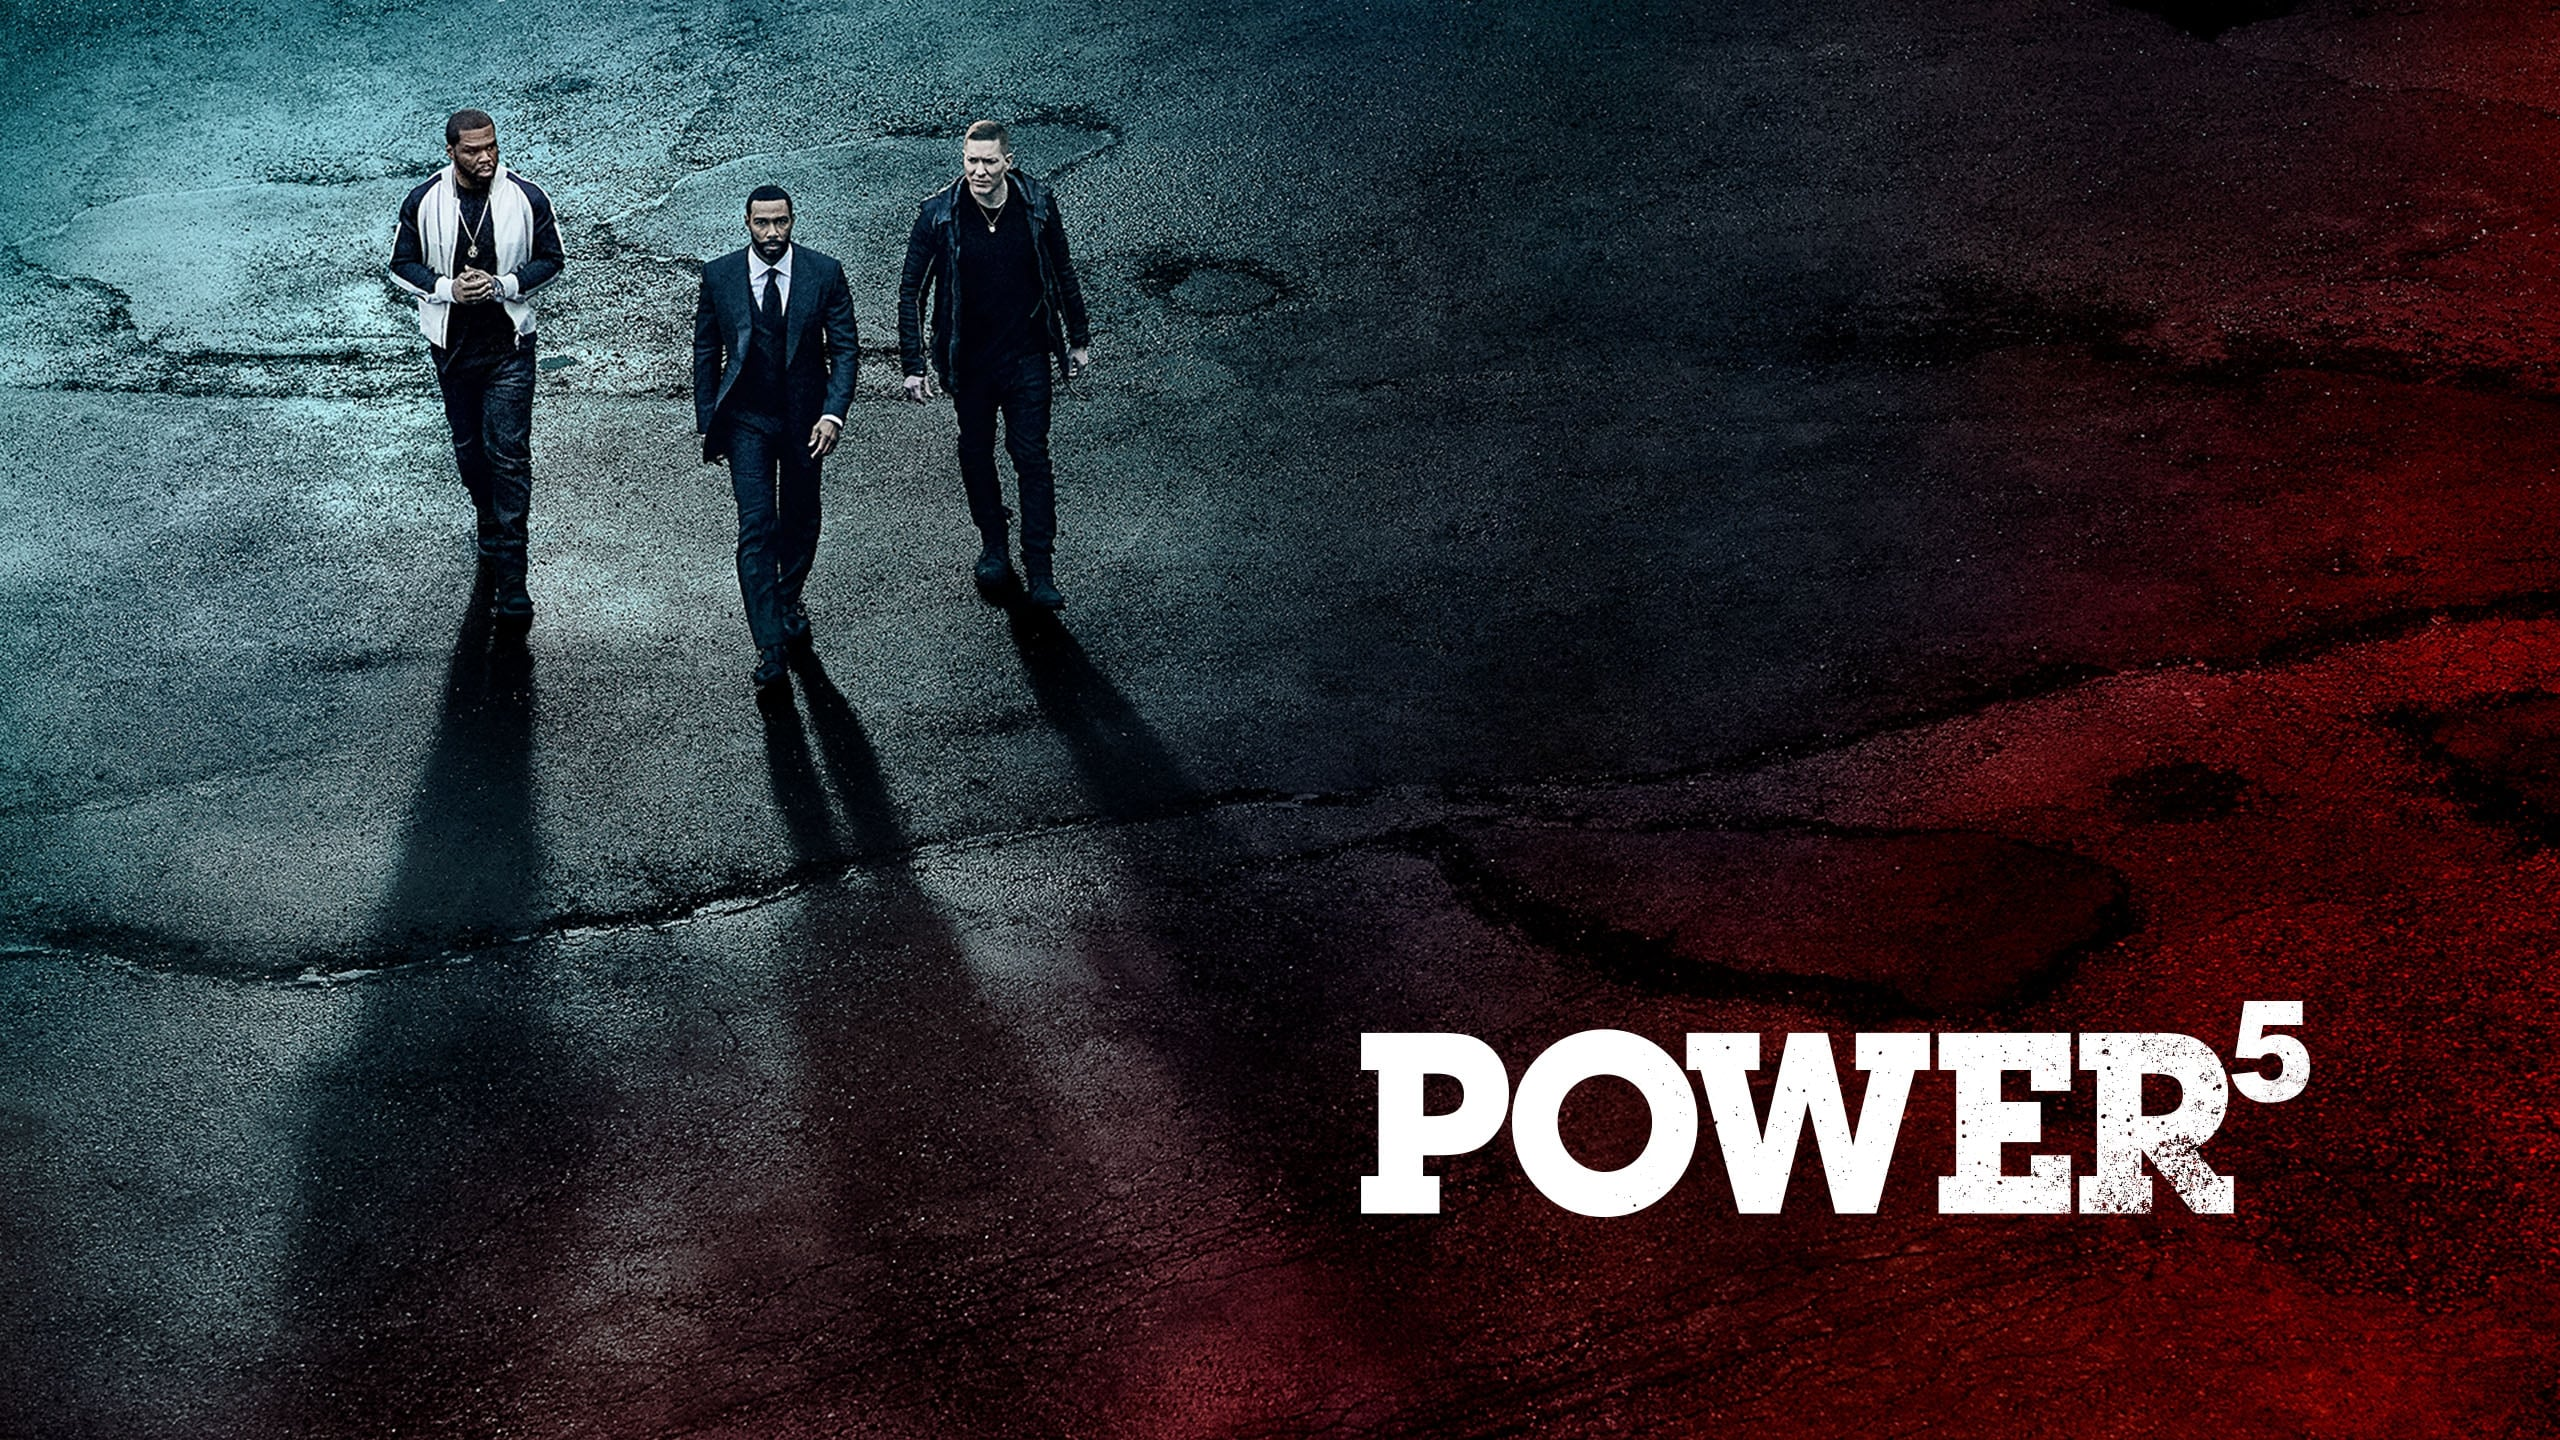 Power - Season 2